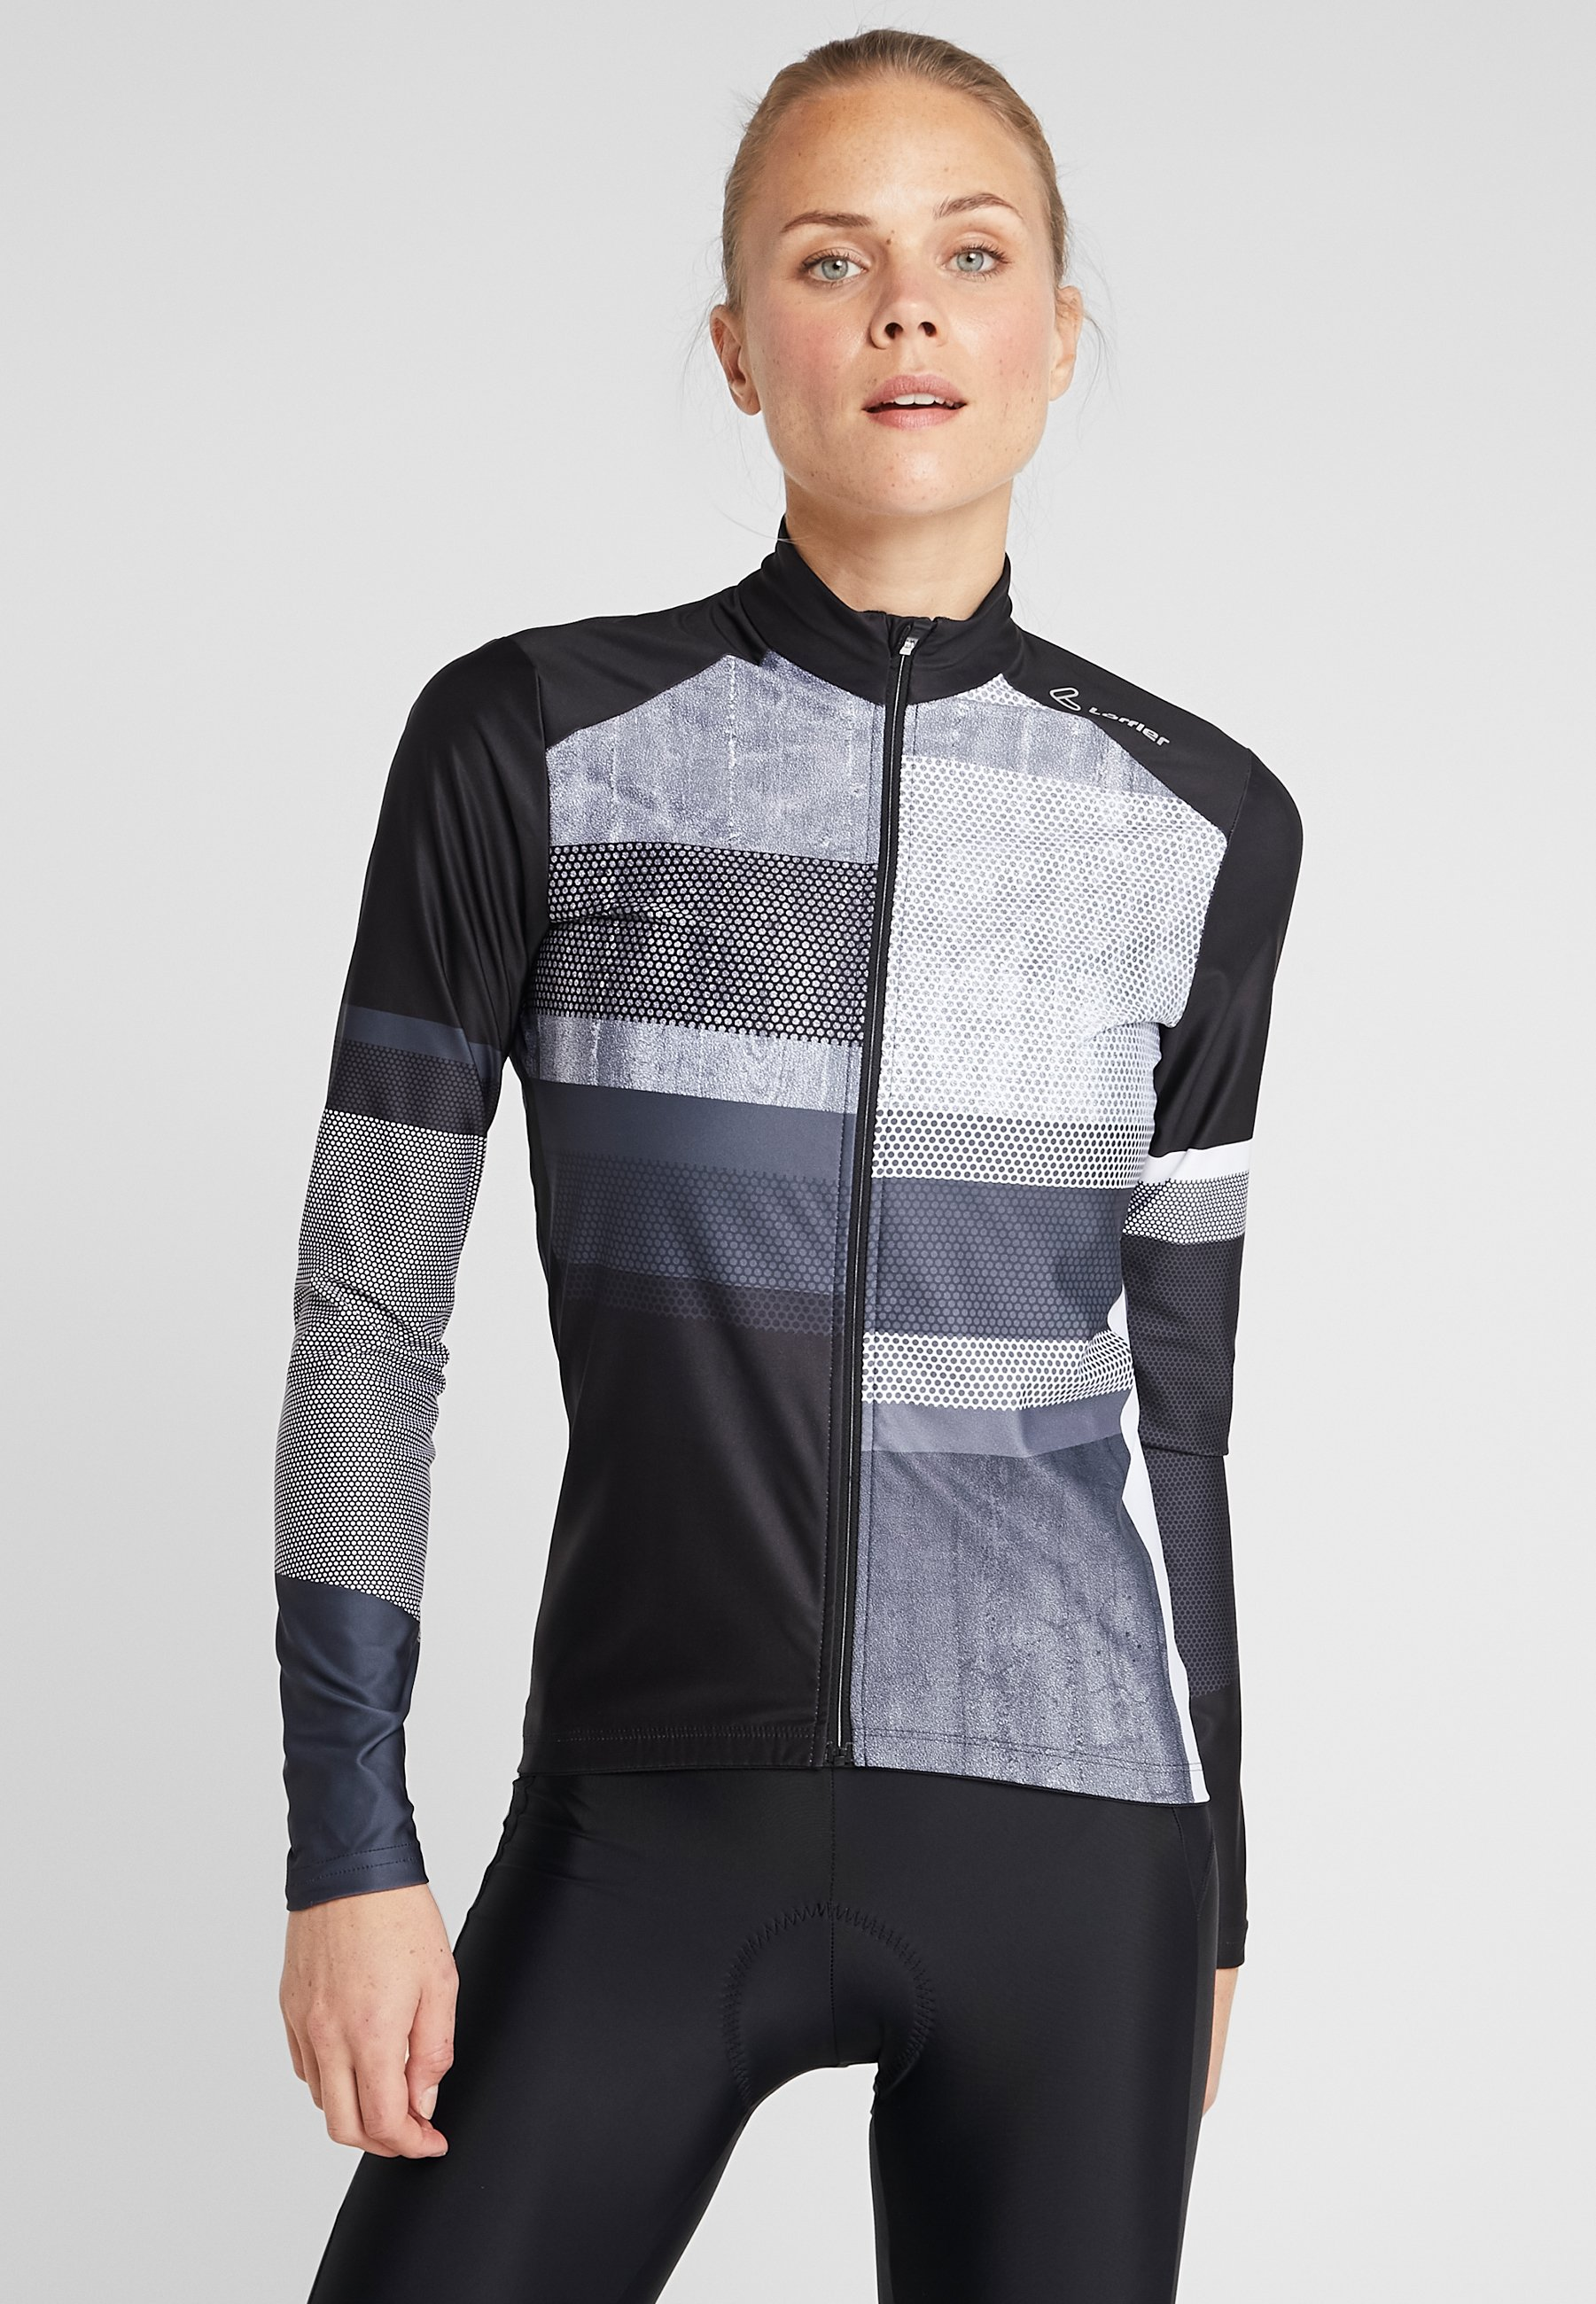 LÖFFLER BIKE PATCHY - Funktionsshirt graphite